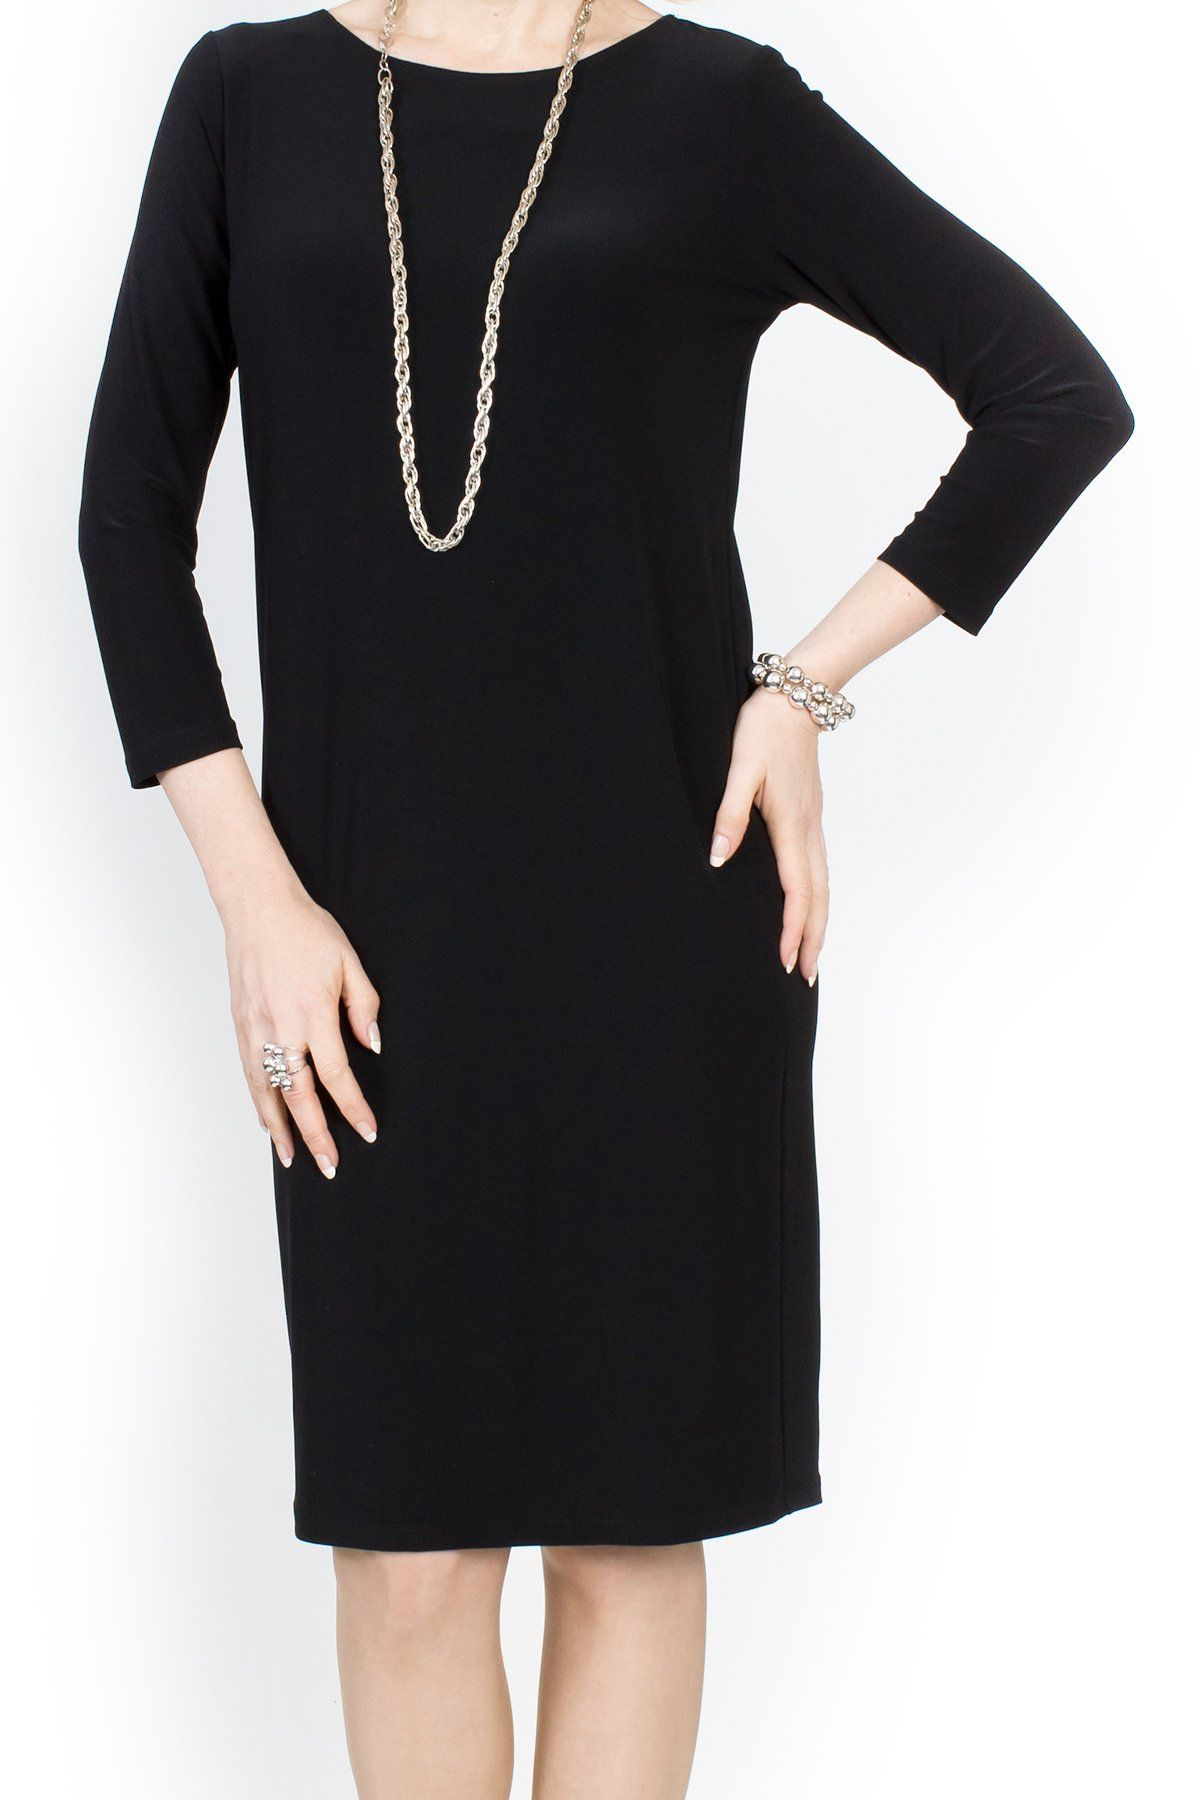 MRS PARK DRESS Black